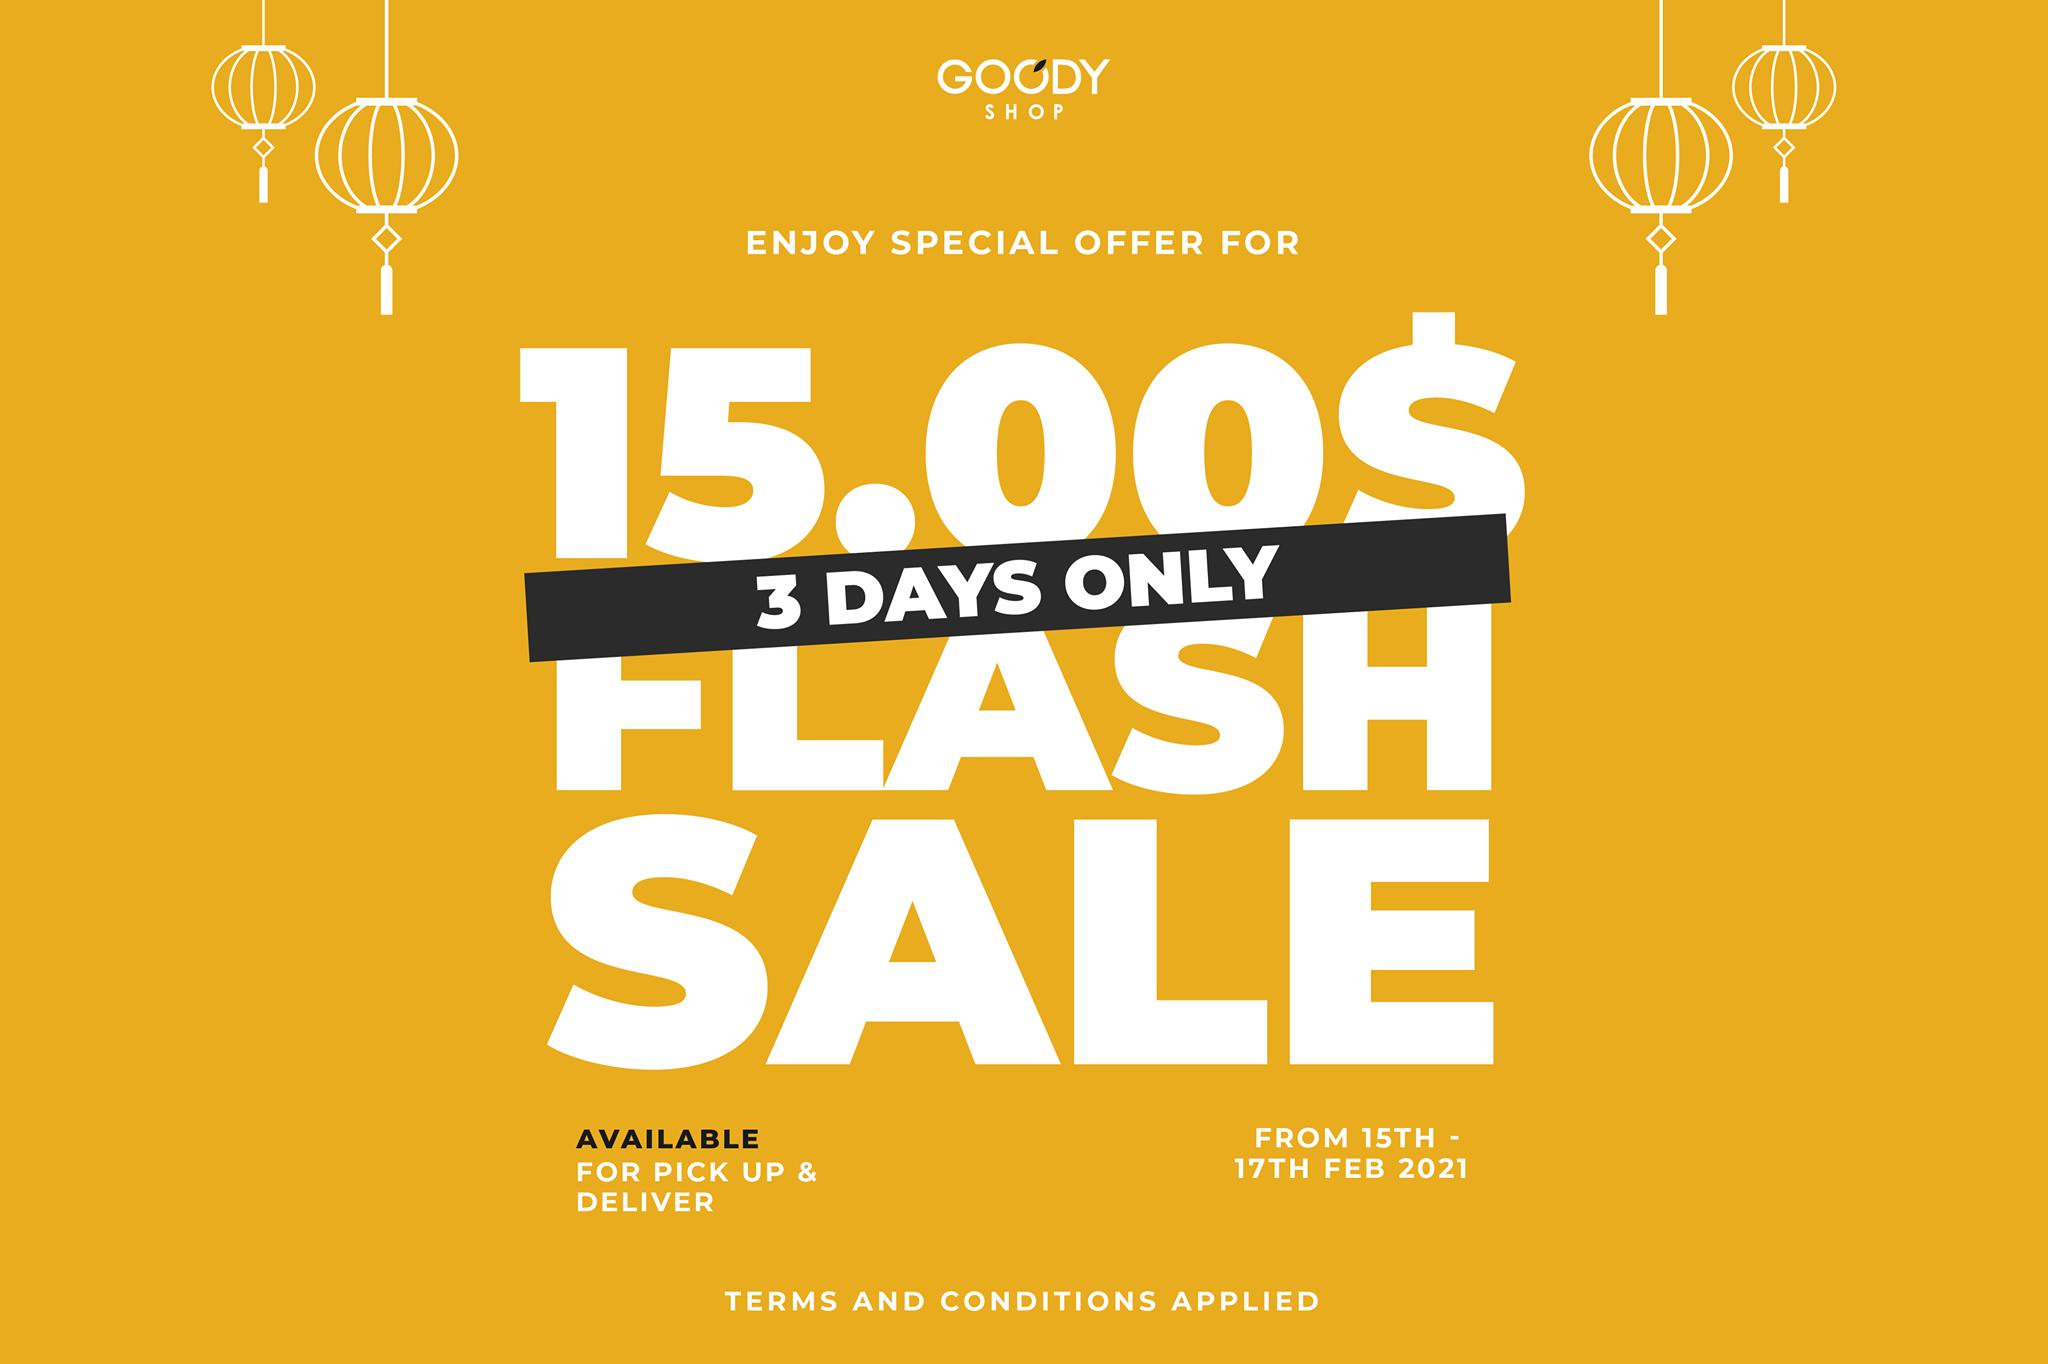 3 Days Only